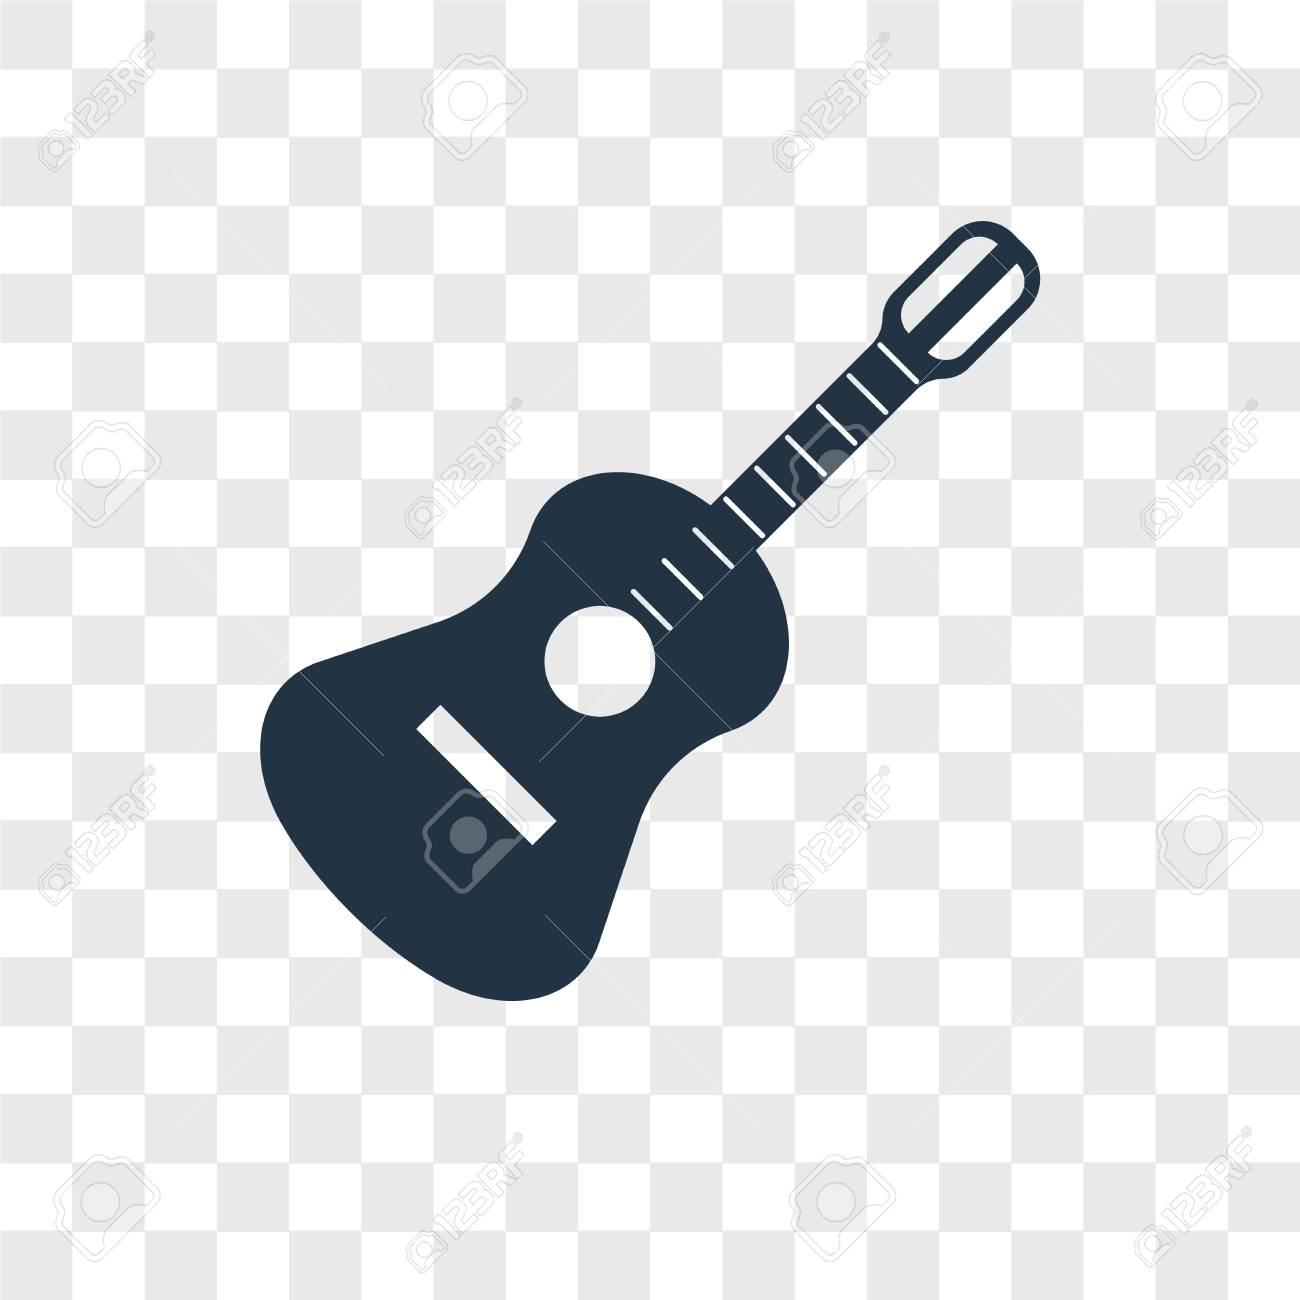 Guitar Vector Icon Isolated On Transparent Background Guitar Royalty Free Cliparts Vectors And Stock Illustration Image 107679318